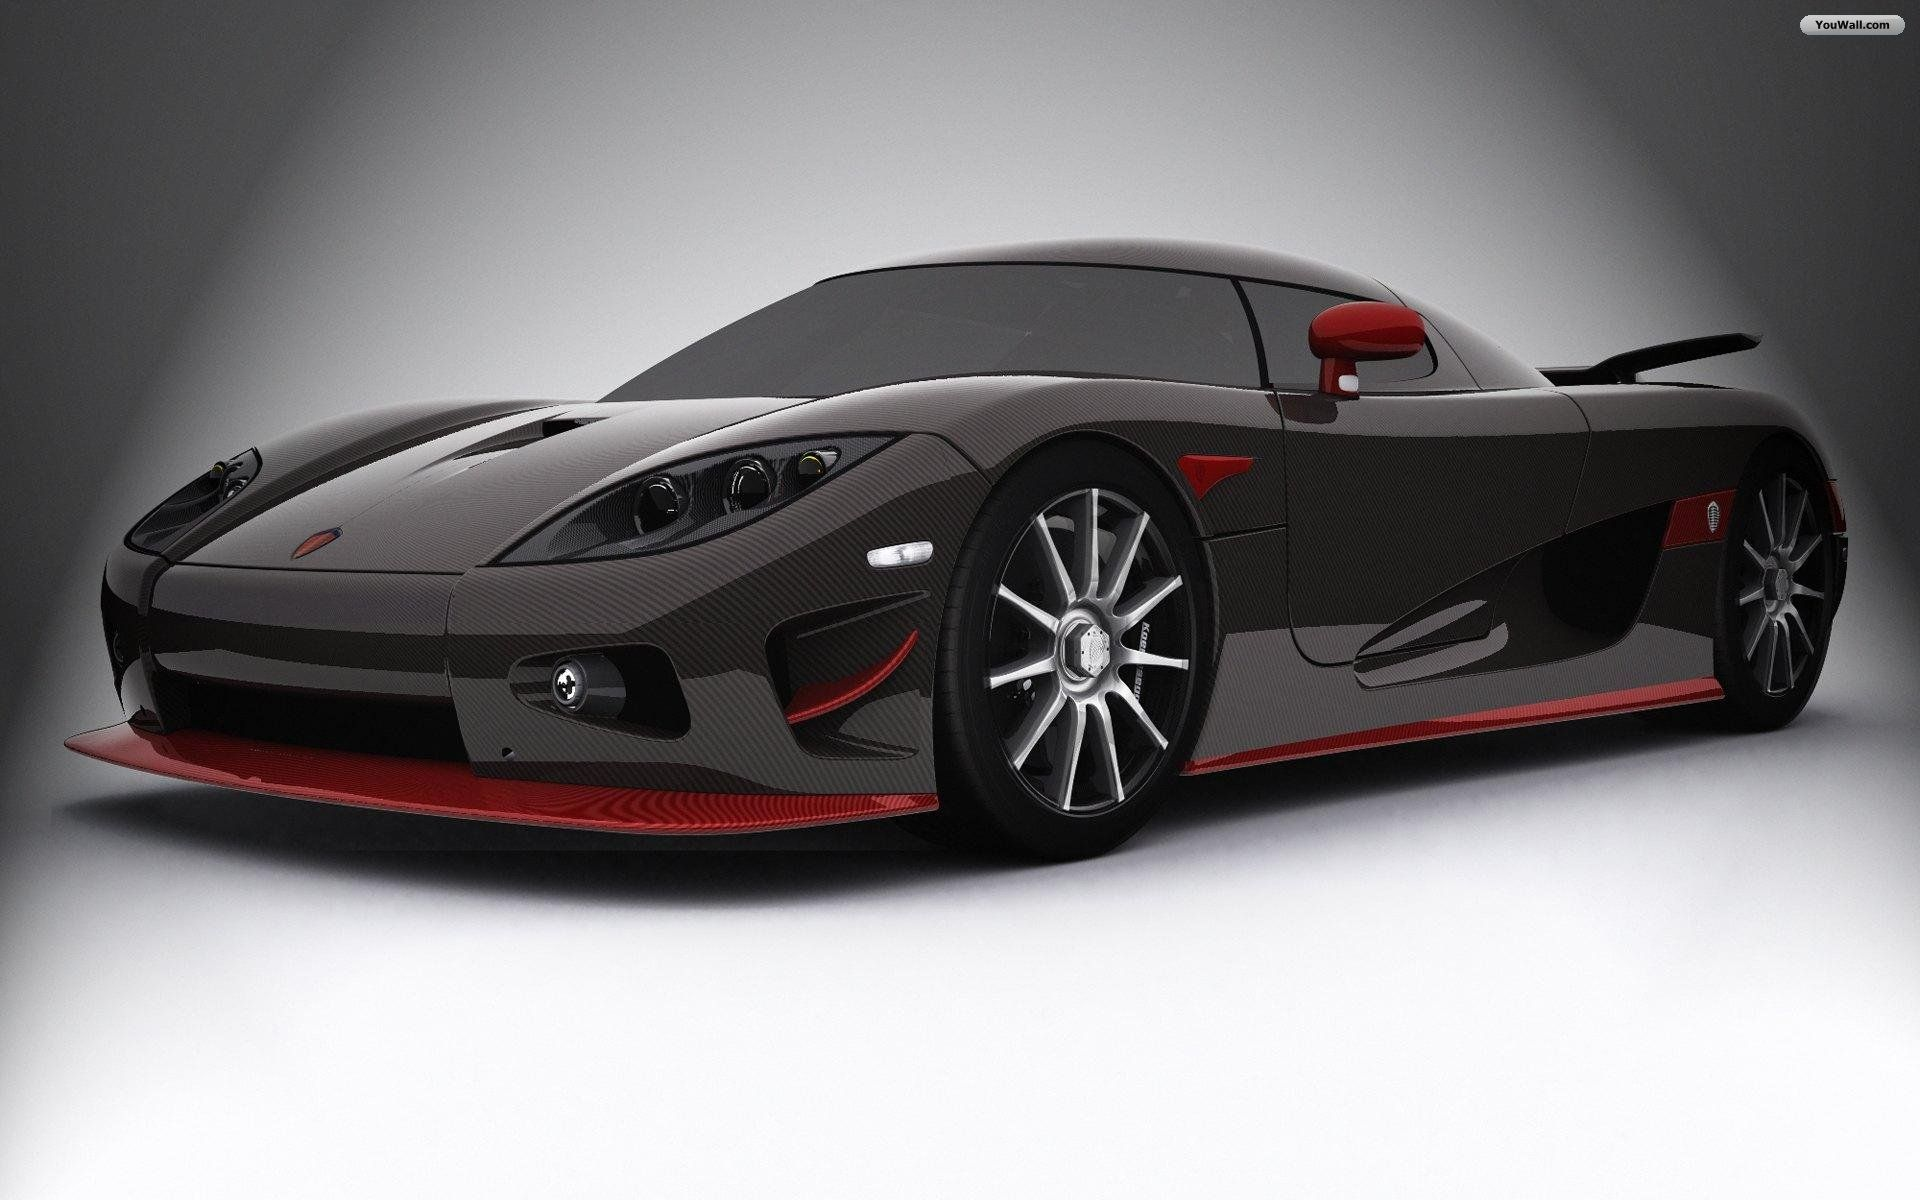 25 New Sports Cars Wallpapers Free Download Koenigsegg Sports Car Wallpaper Fast Sports Cars